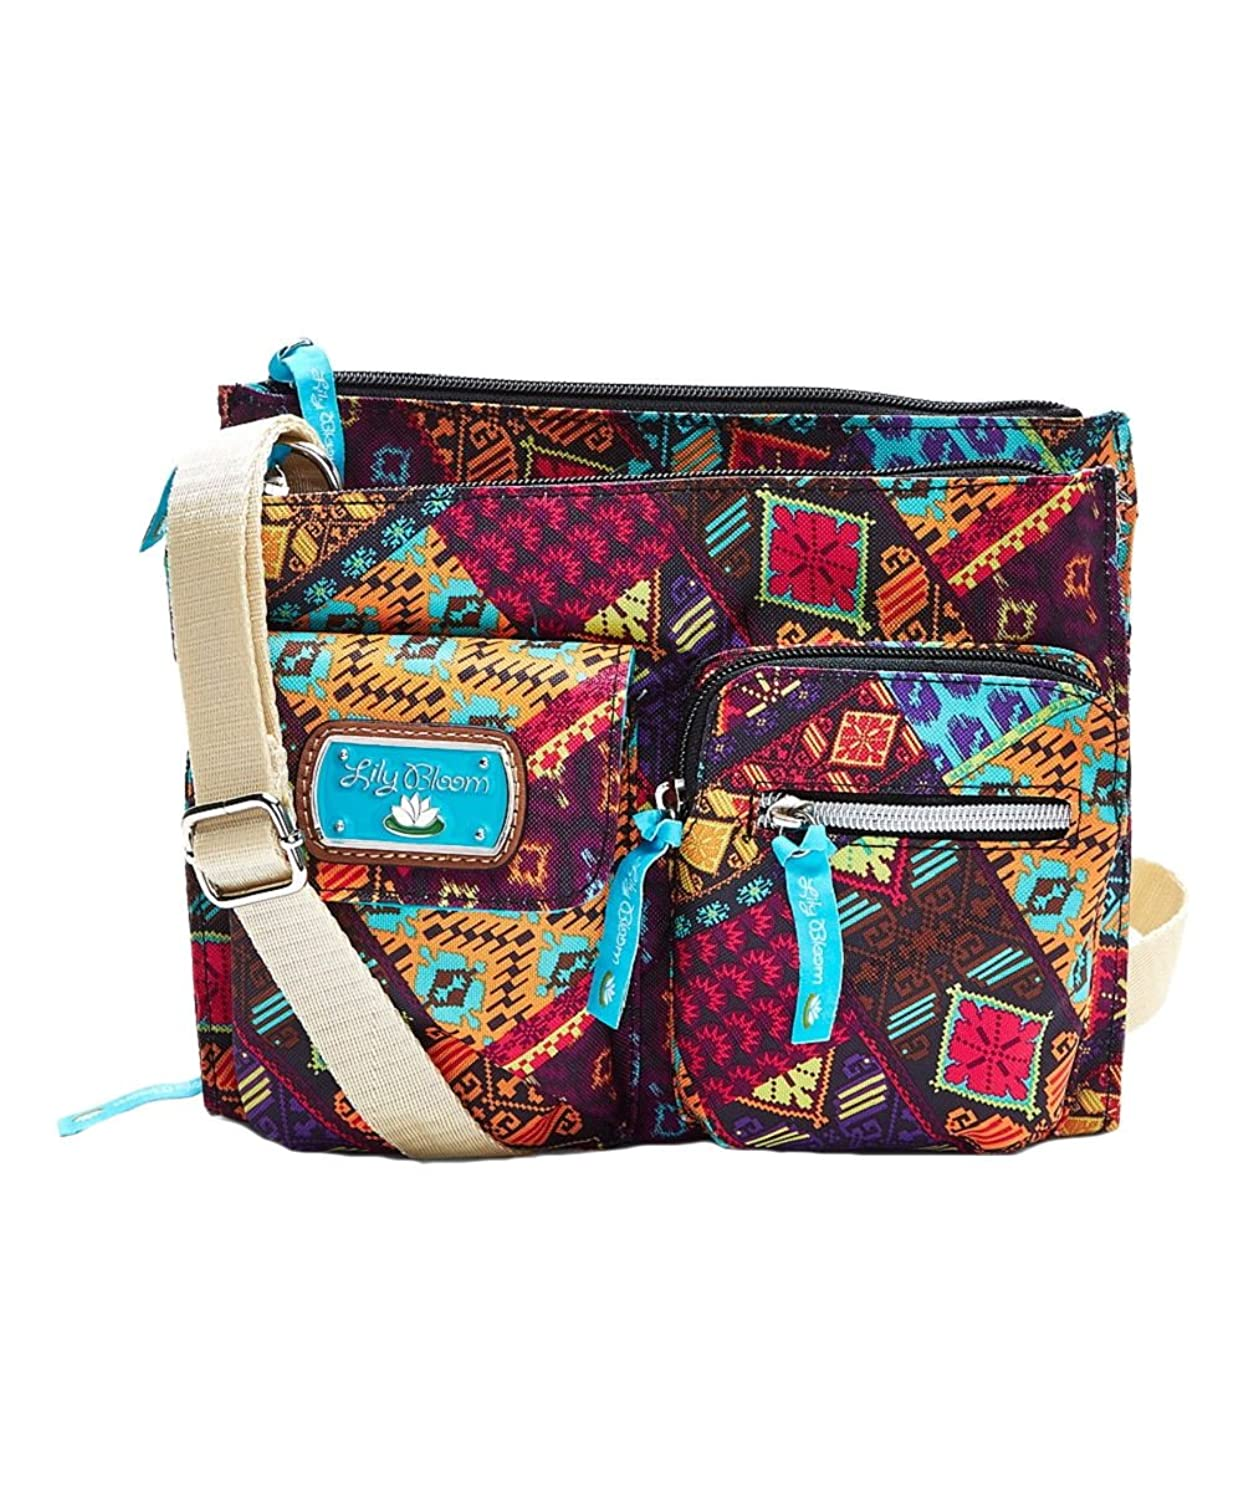 Lily Bloom Patched Shapes Regina Crossbody Bag